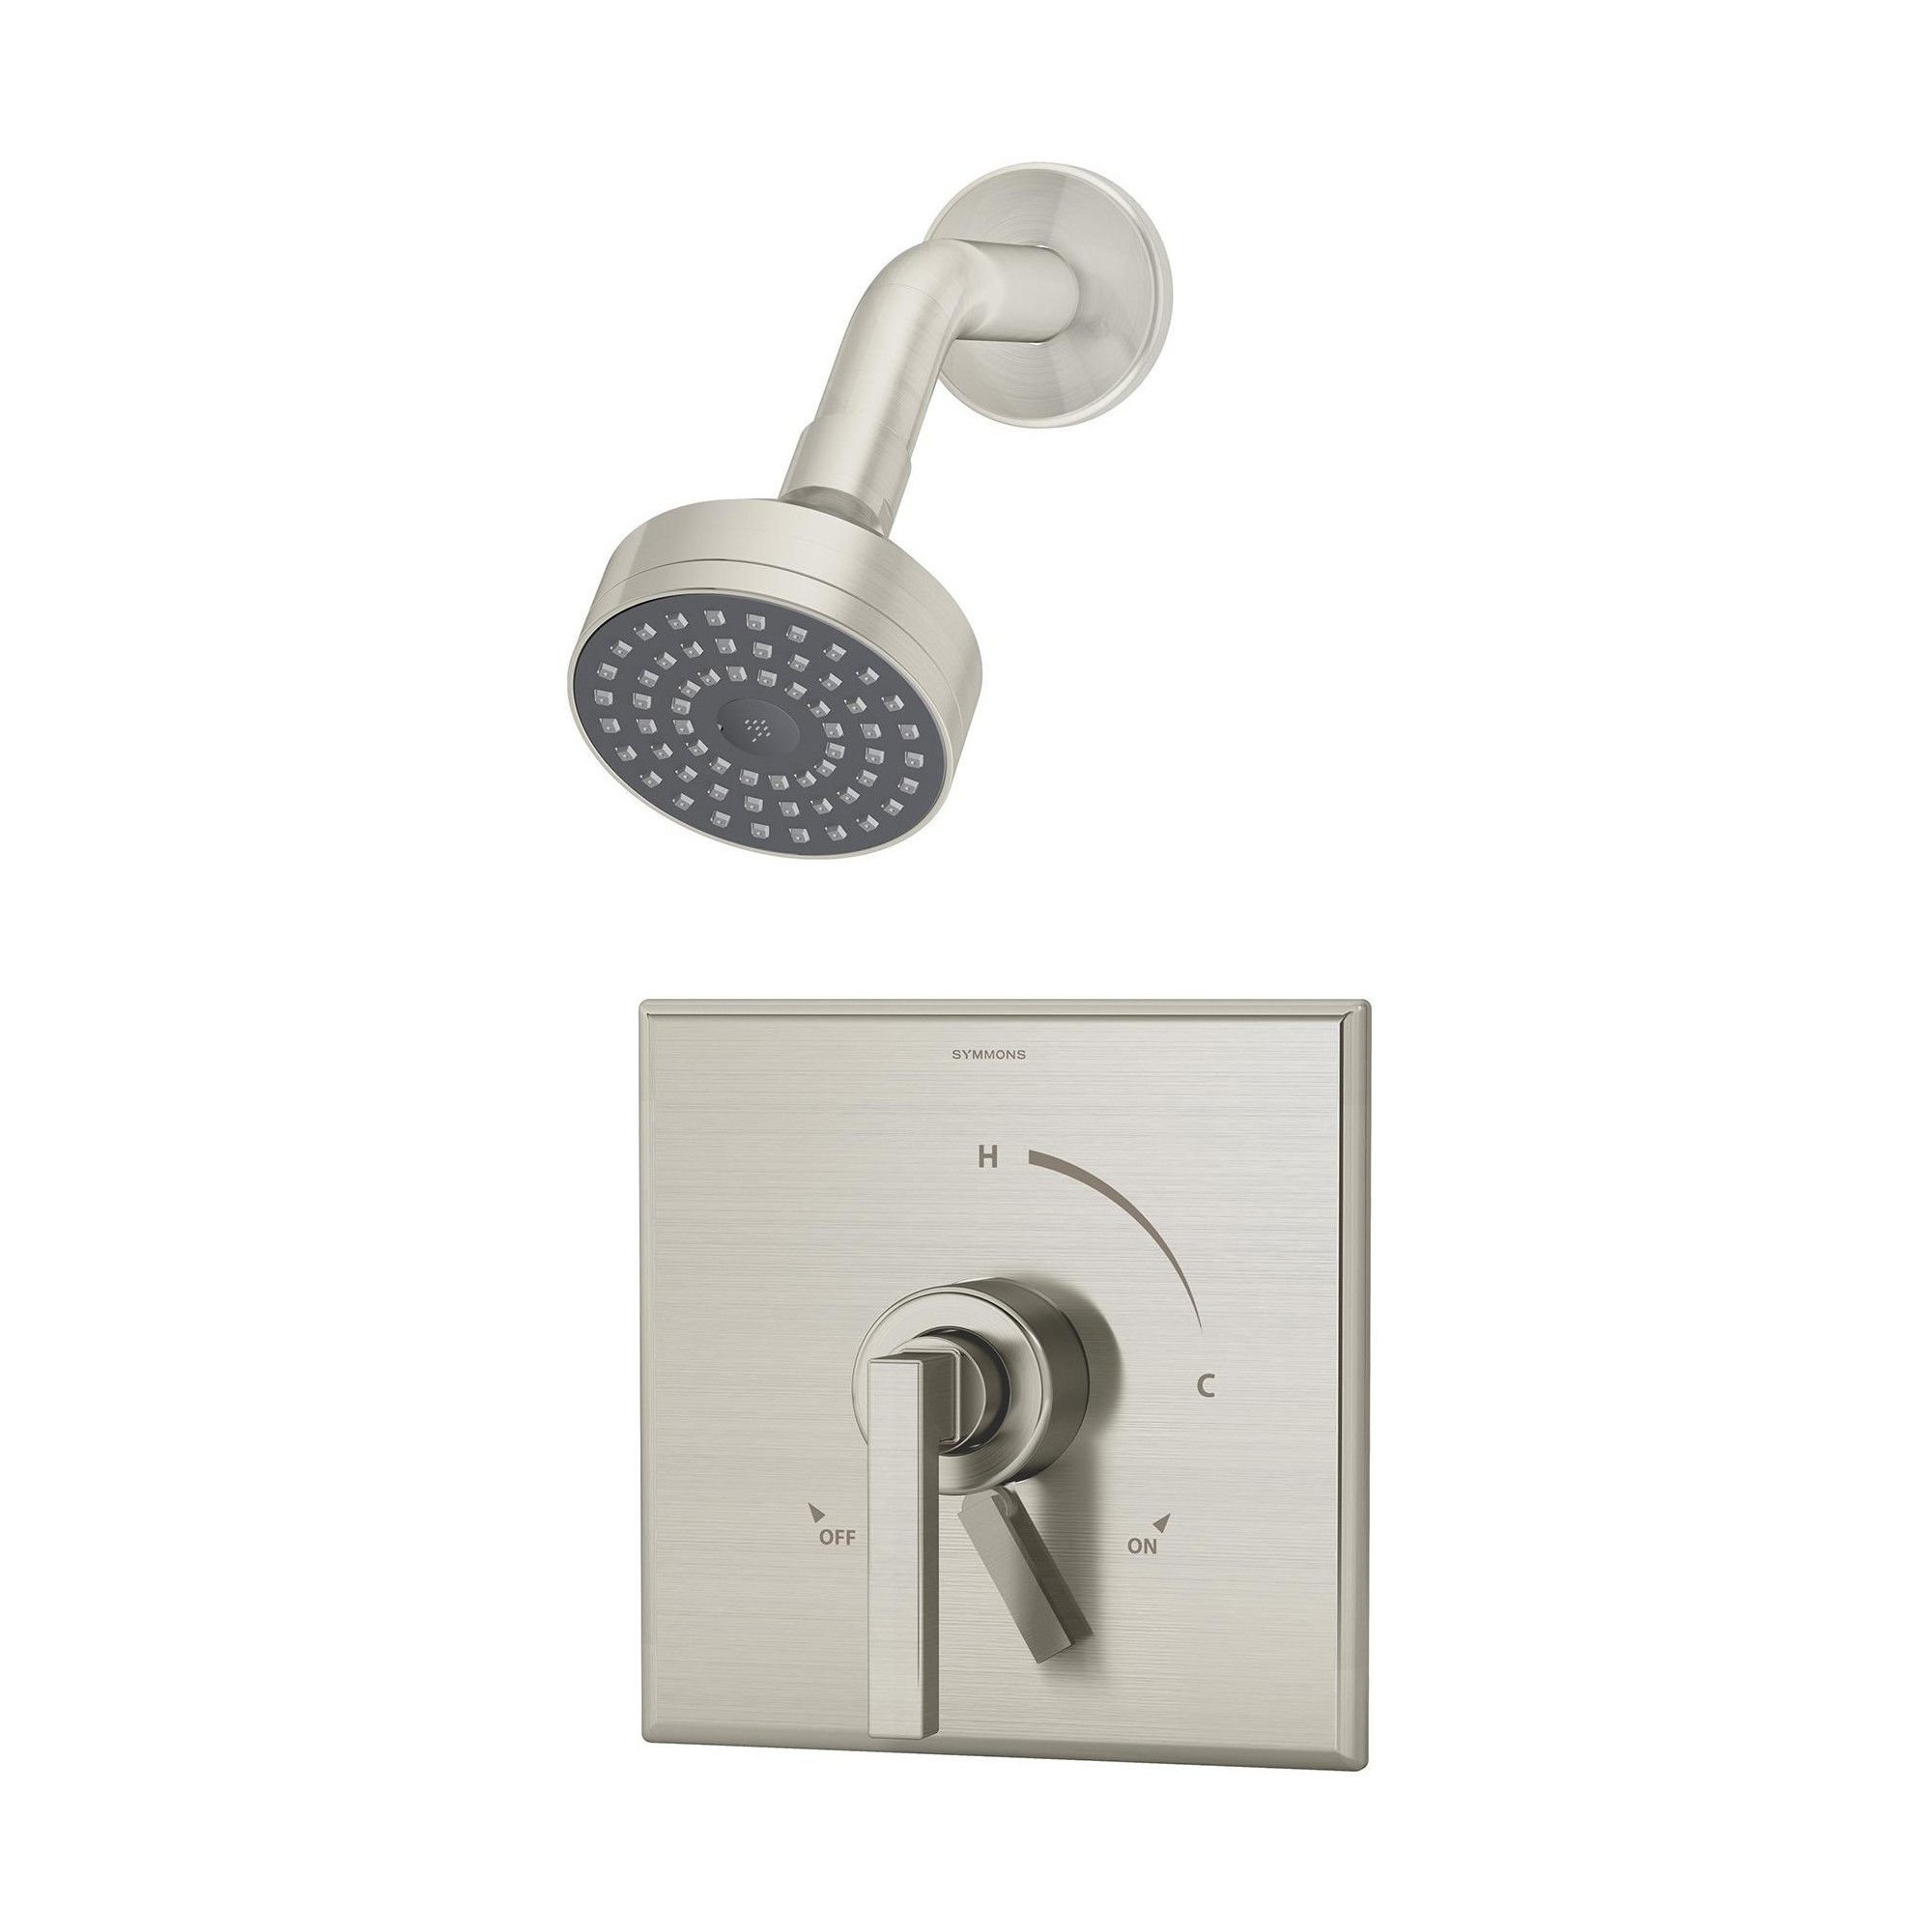 Symmons S 3601 1 5 Trm Duro Shower Only Trim Package With 1 5 Gpm